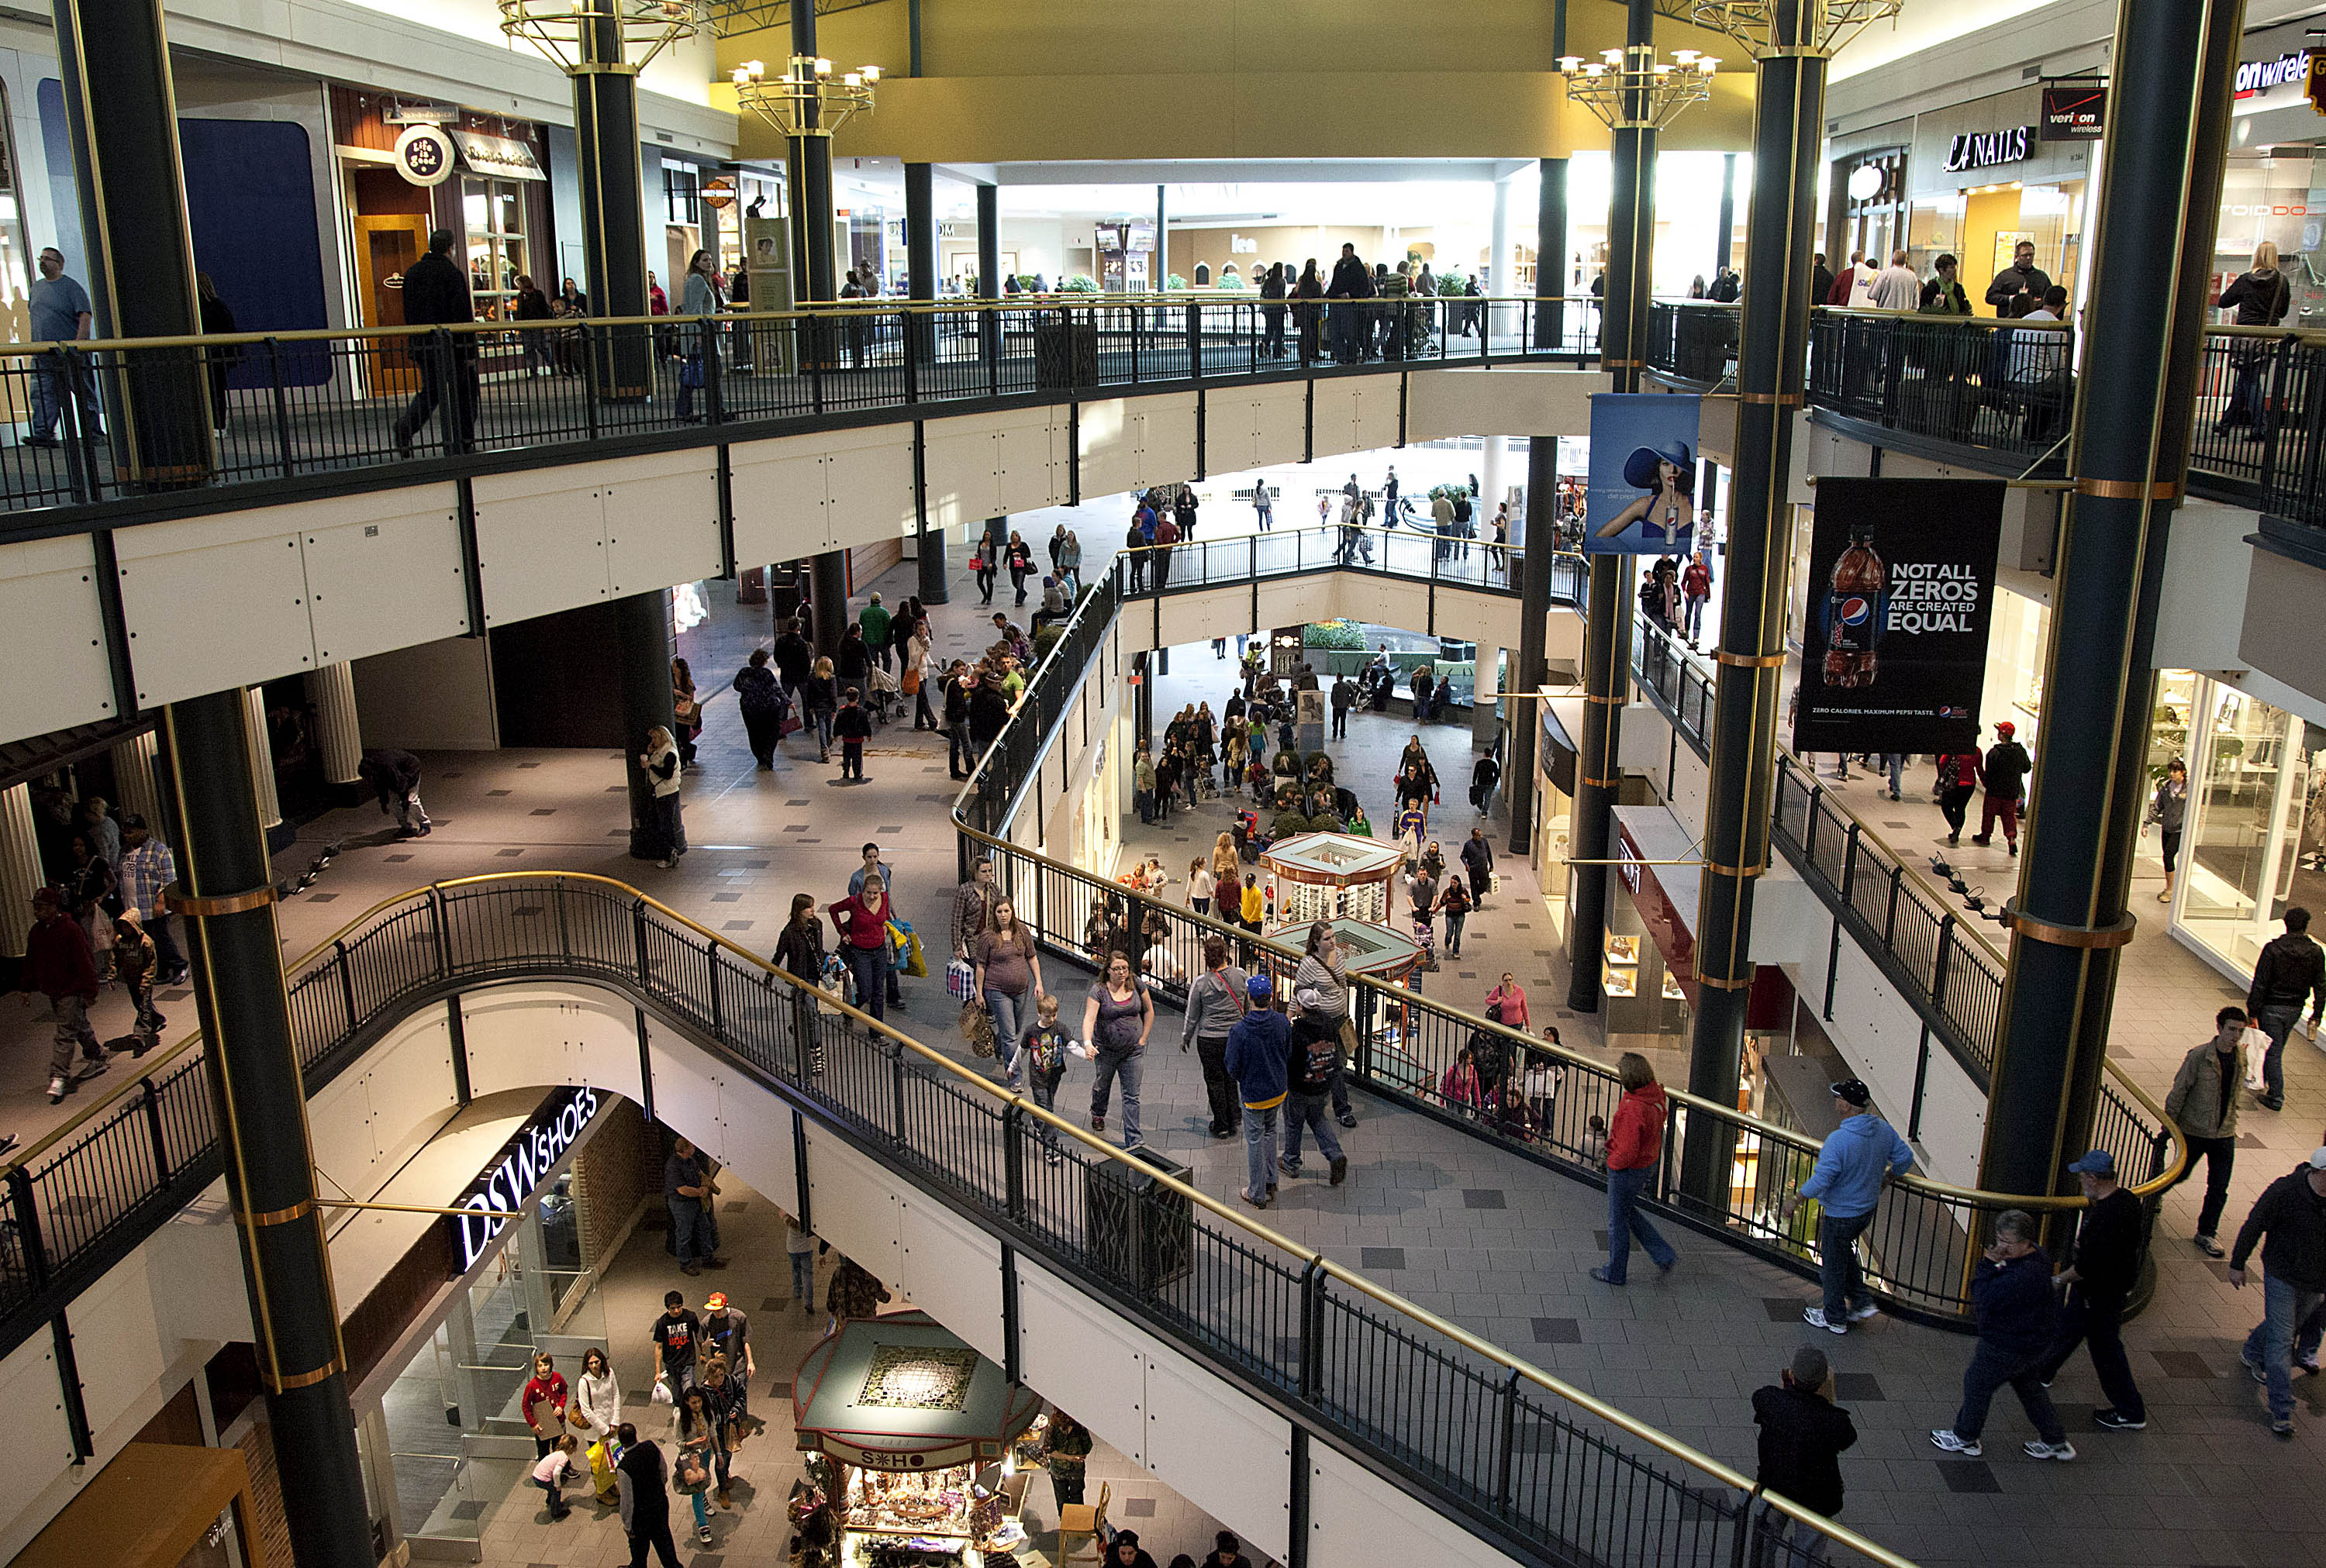 Shoppers walk around the Mall of America in Bloomington, Minn., on Feb. 25, 2012.